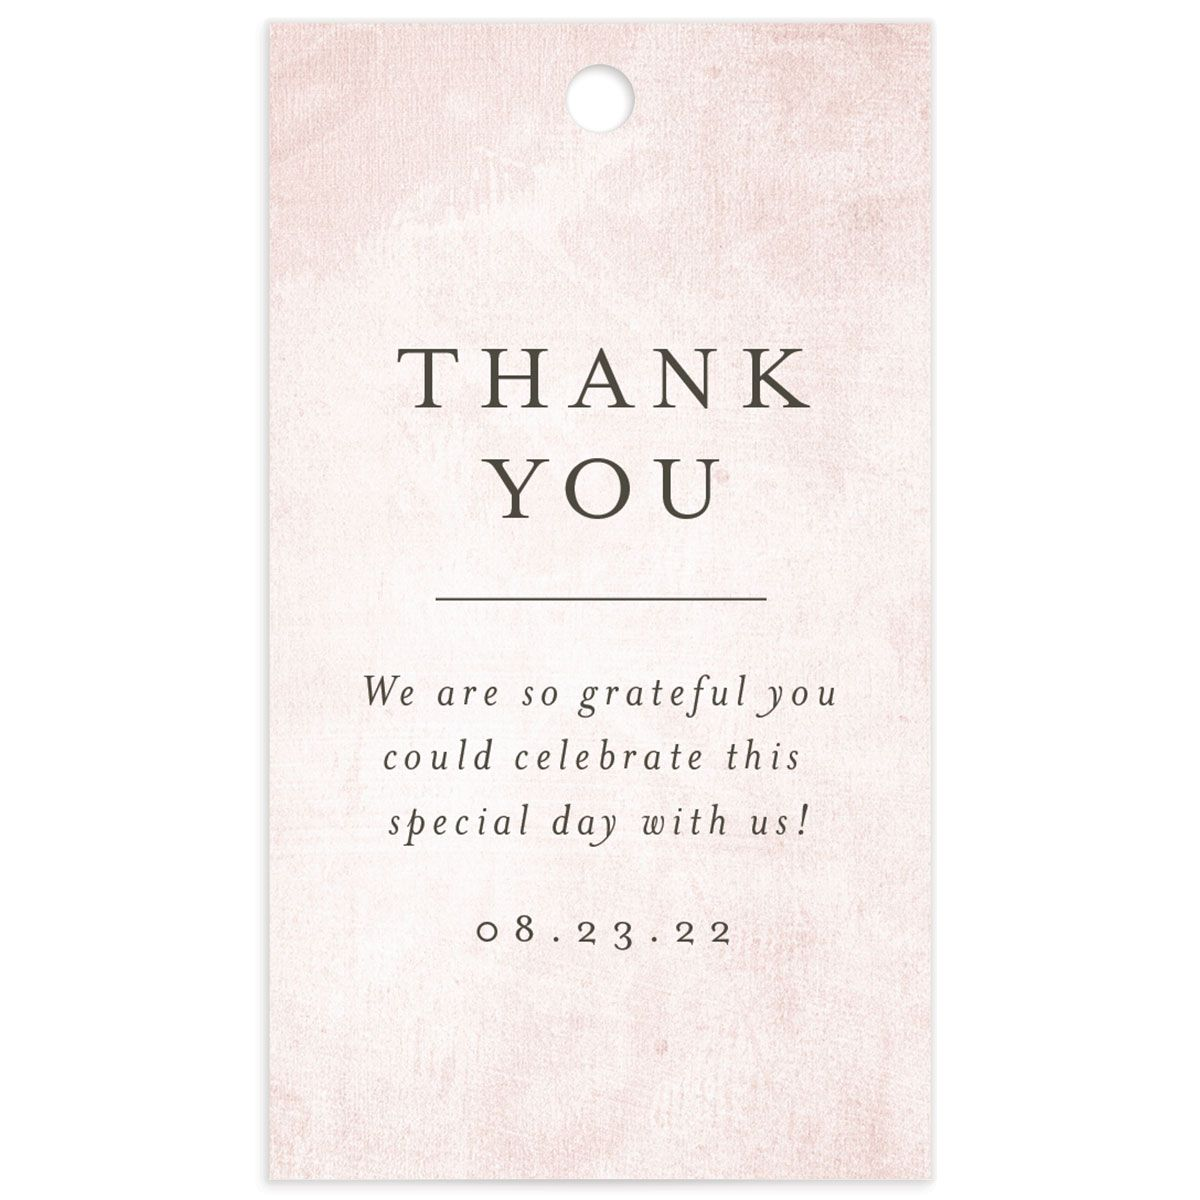 Muted Floral Wedding Gift Tag back pink